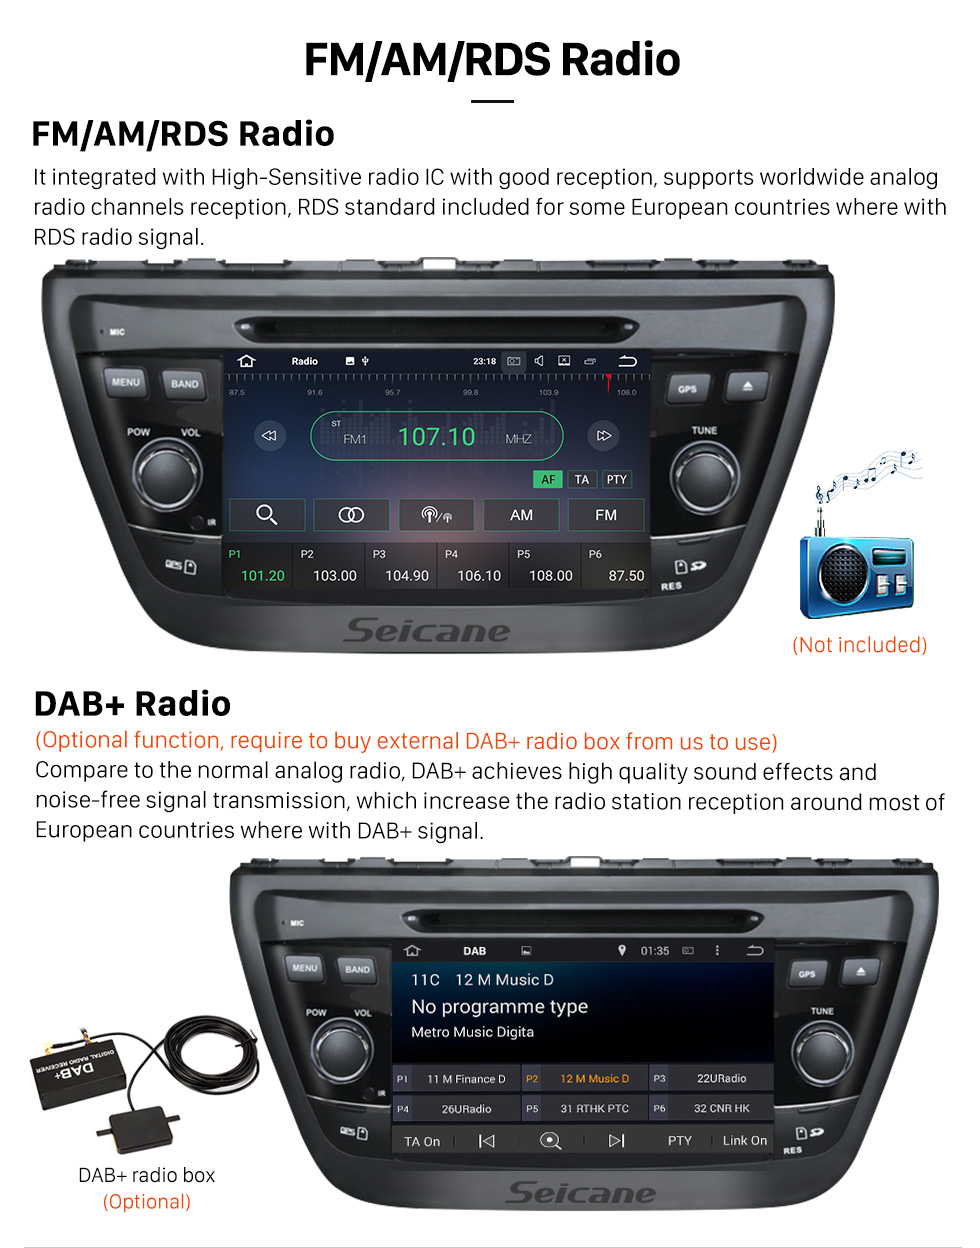 Seicane Aftermarket 2013 2014 Suzuki S Cross Android 5.1.1 Radio DVD player GPS navigation system Mirror link GPS HD 1024*600 touch screen Bluetooth OBD2 DVR Rearview camera TV 1080P Video 3G WIFI Steering Wheel Control USB SD Quad-core CPU